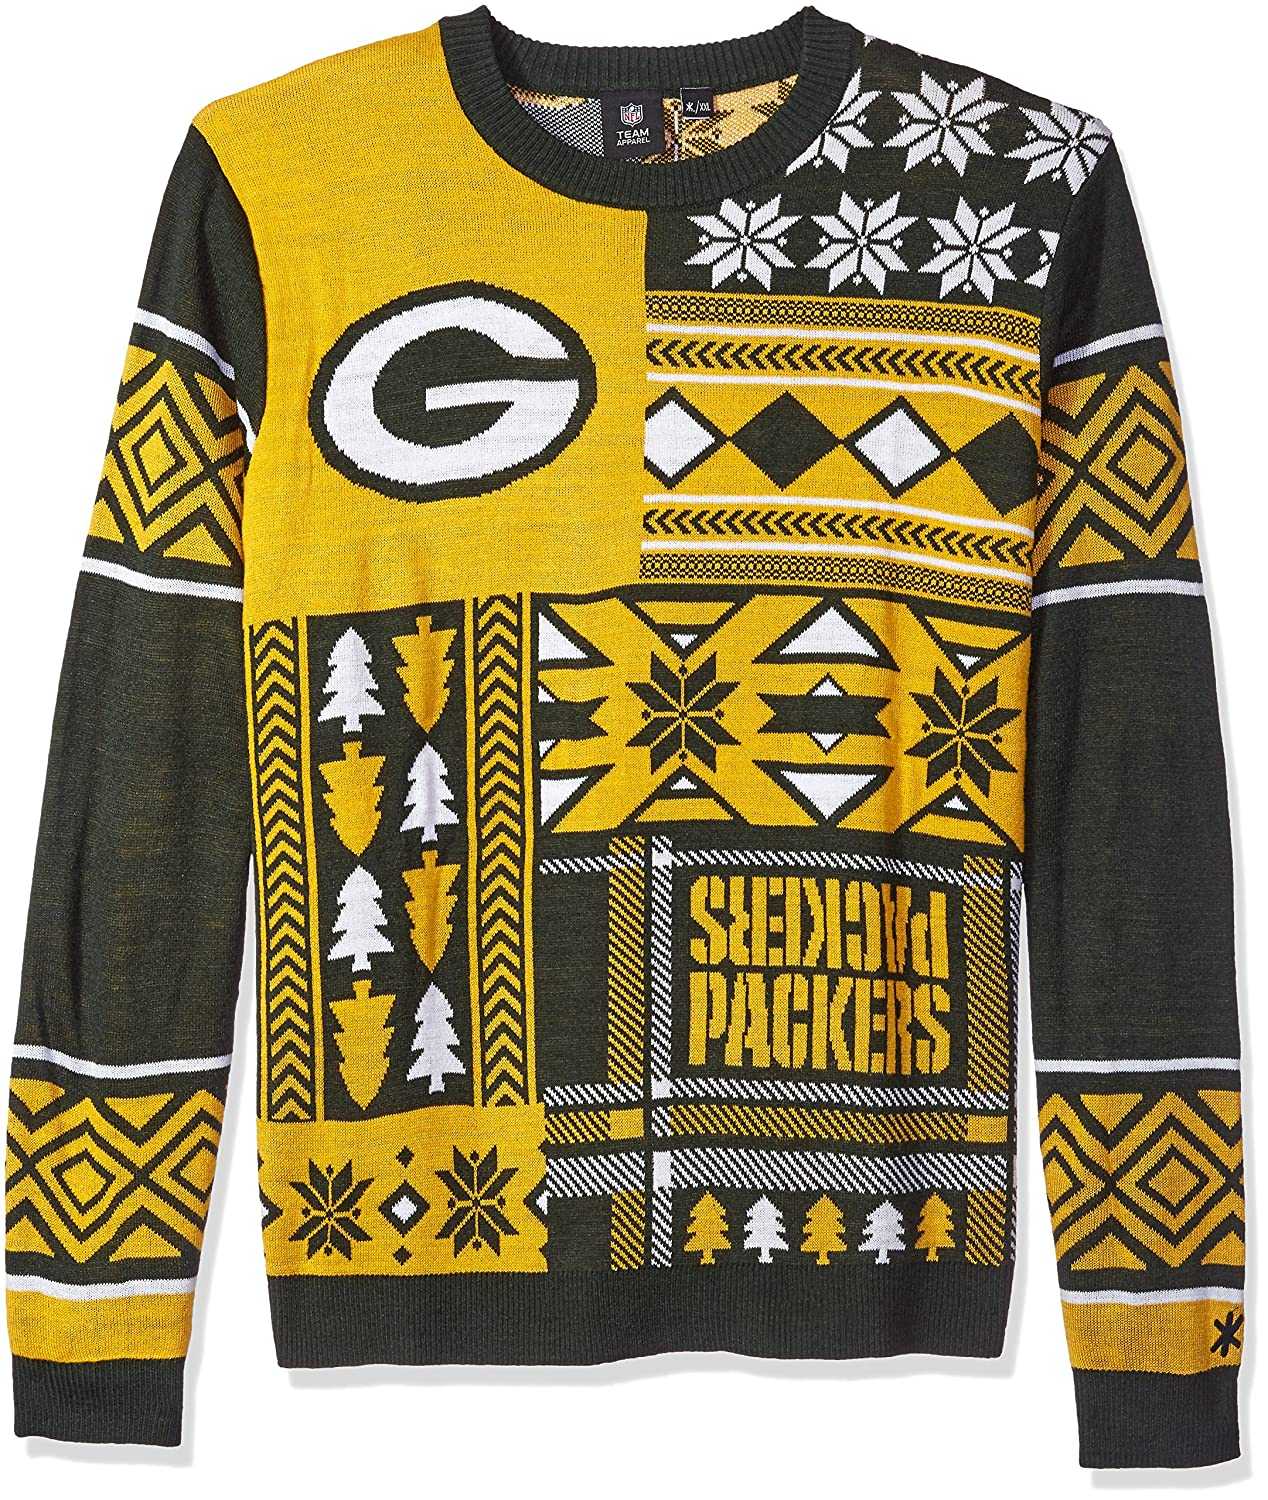 Amazon.com : NFL Patches Ugly Sweater- Pick Team! : Sports & Outdoors